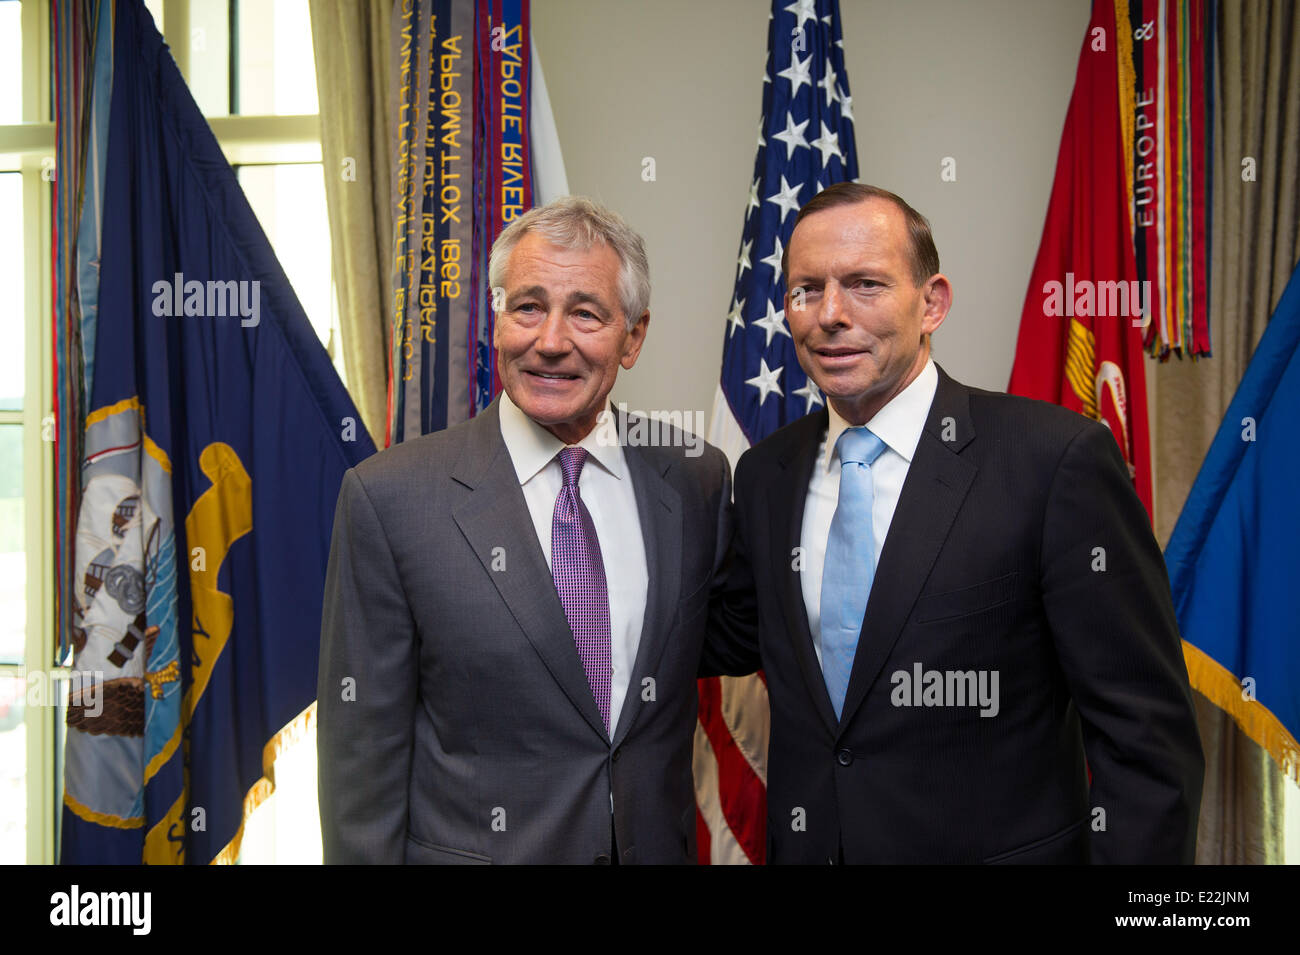 US Secretary of Defense Chuck Hagel with Australian Prime Minister Tony Abbott before their meeting at the Pentagon - Stock Image